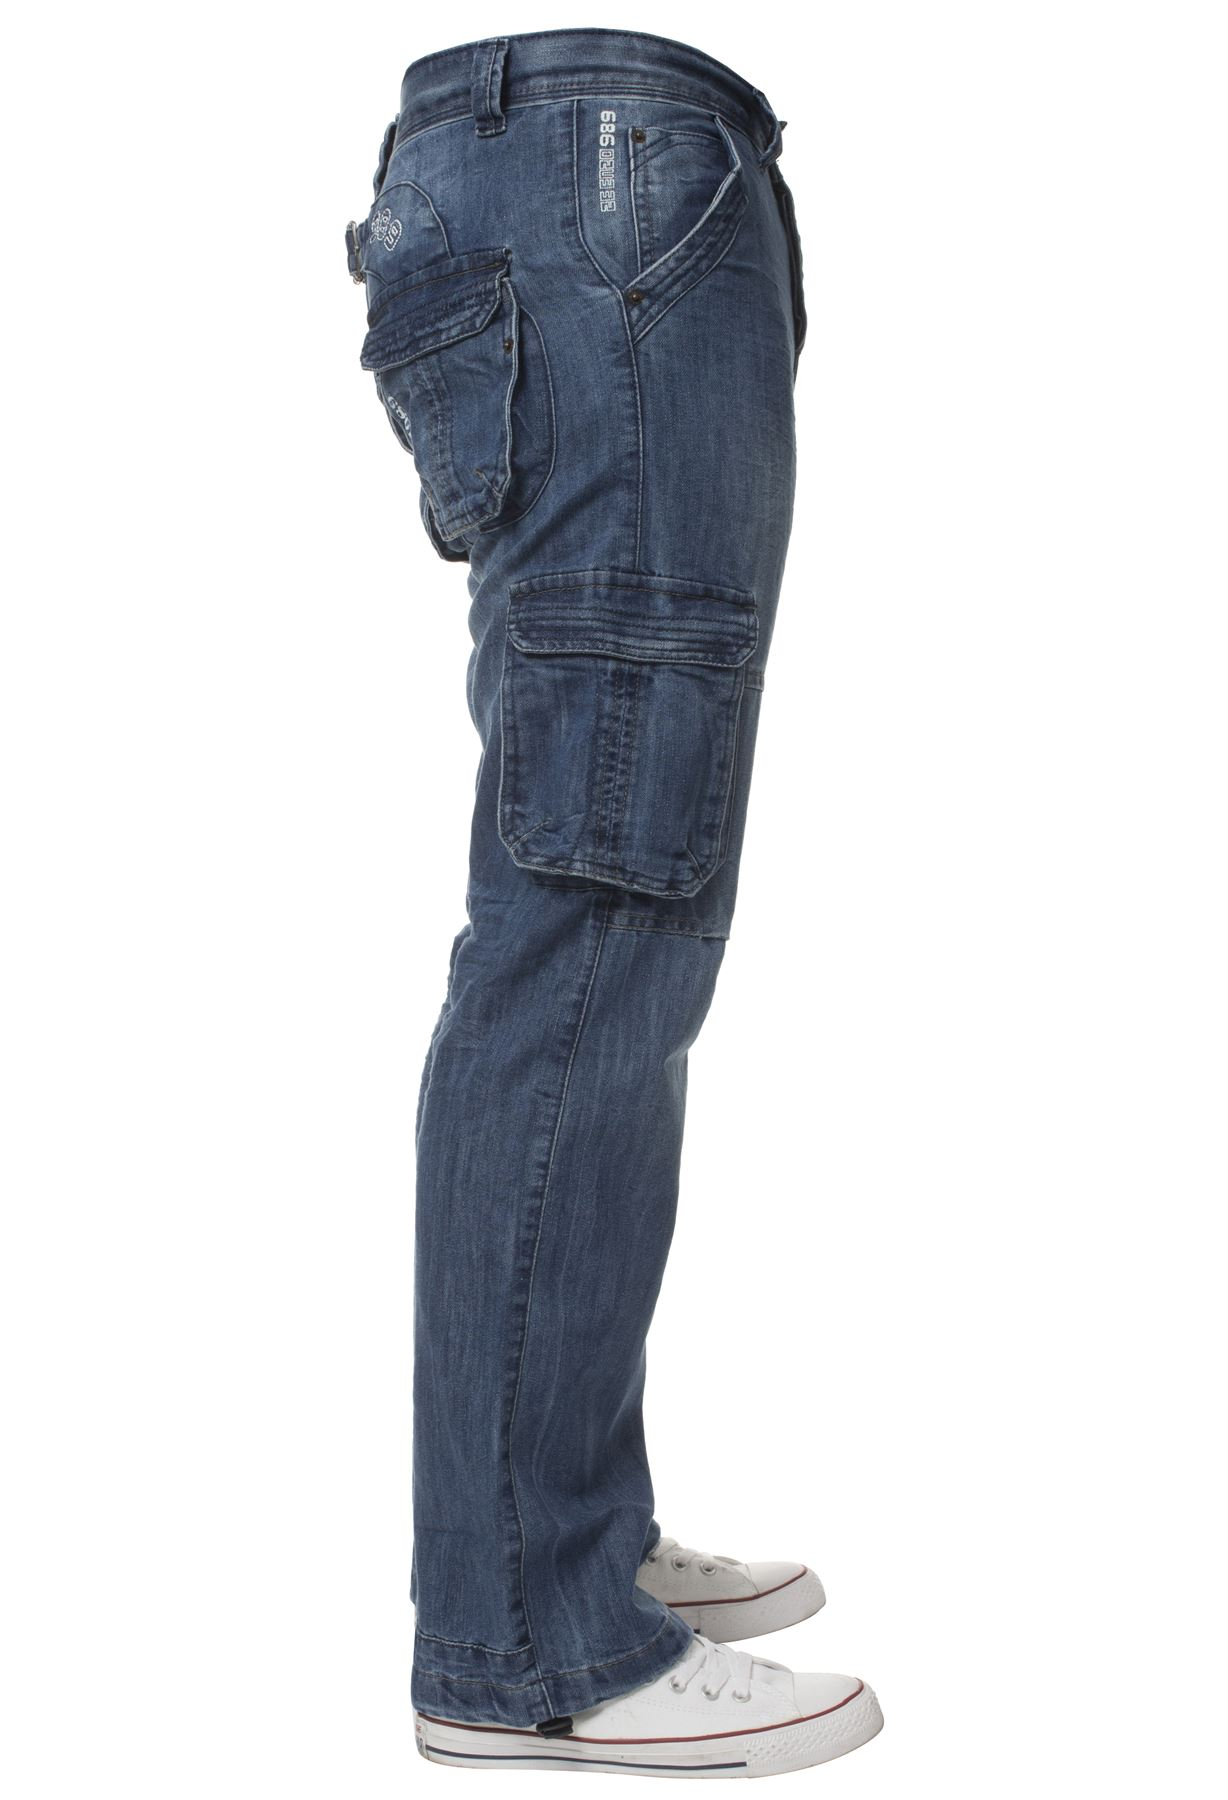 Enzo-Mens-Cargo-Combat-Trousers-Jeans-Work-Casual-Denim-Pants-Big-Tall-All-Waist thumbnail 11